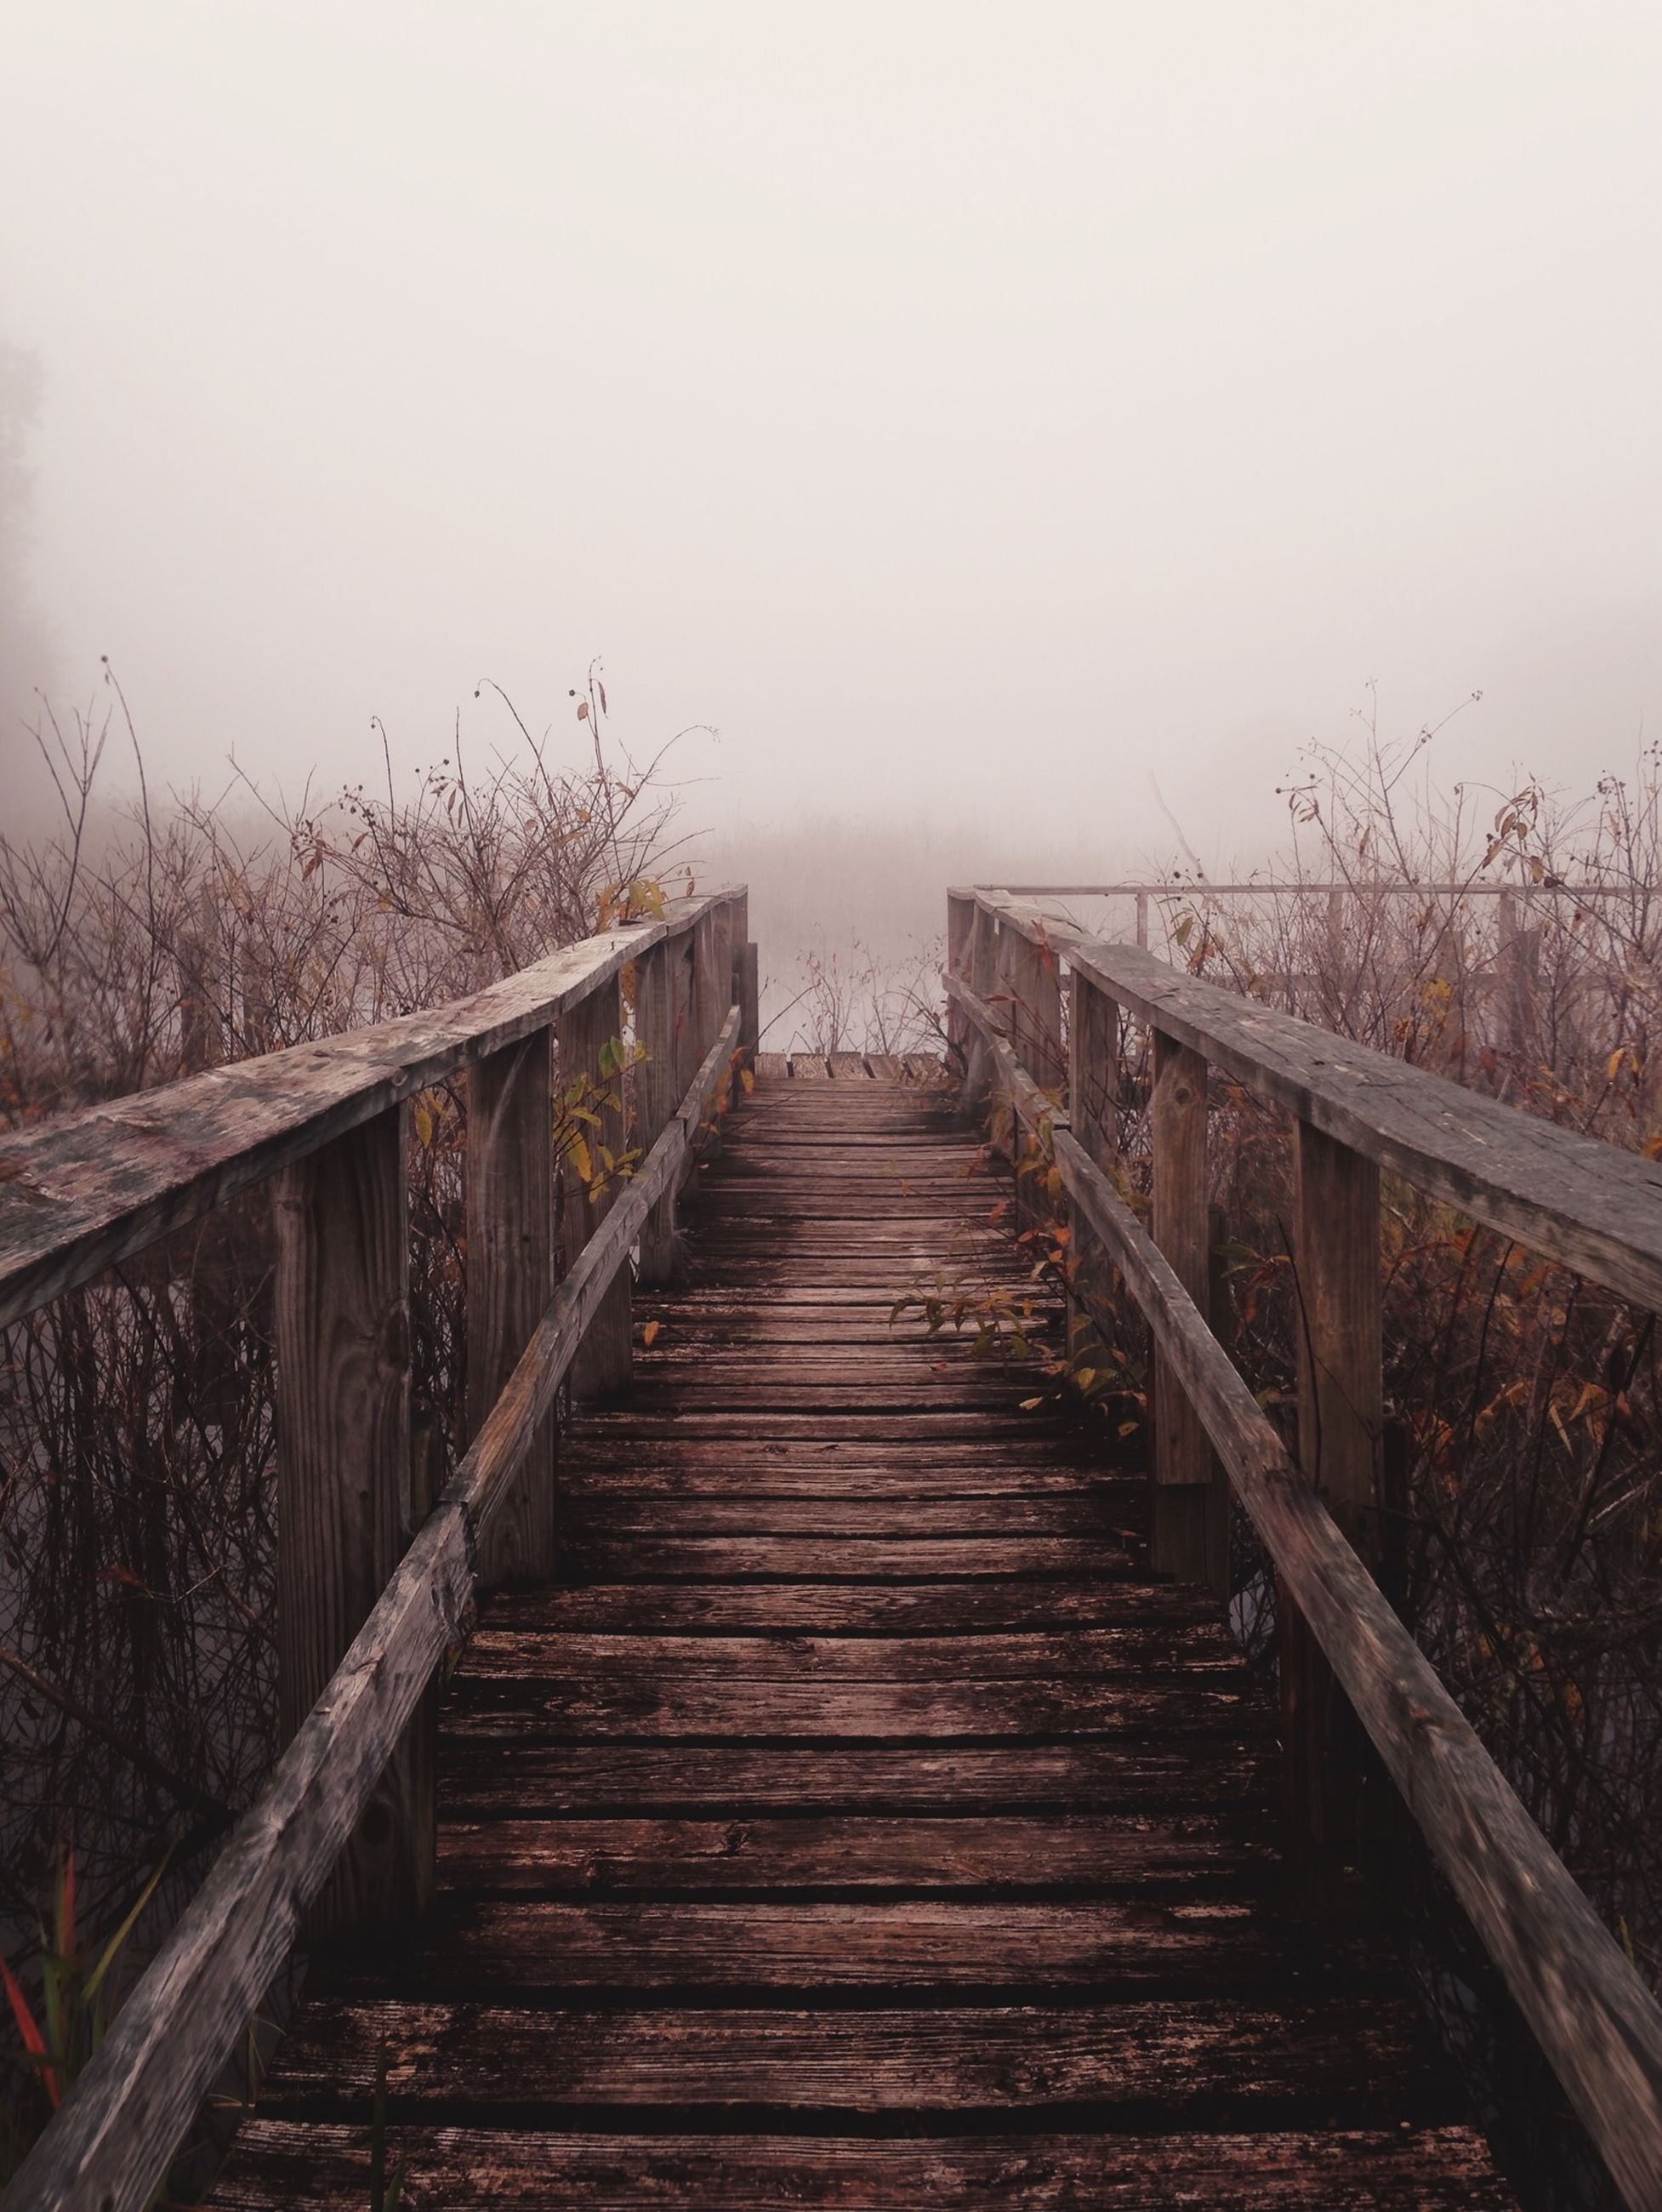 the way forward, wood - material, railing, sky, diminishing perspective, boardwalk, pier, tranquility, built structure, wooden, footbridge, nature, tranquil scene, water, connection, clear sky, wood, vanishing point, fence, outdoors